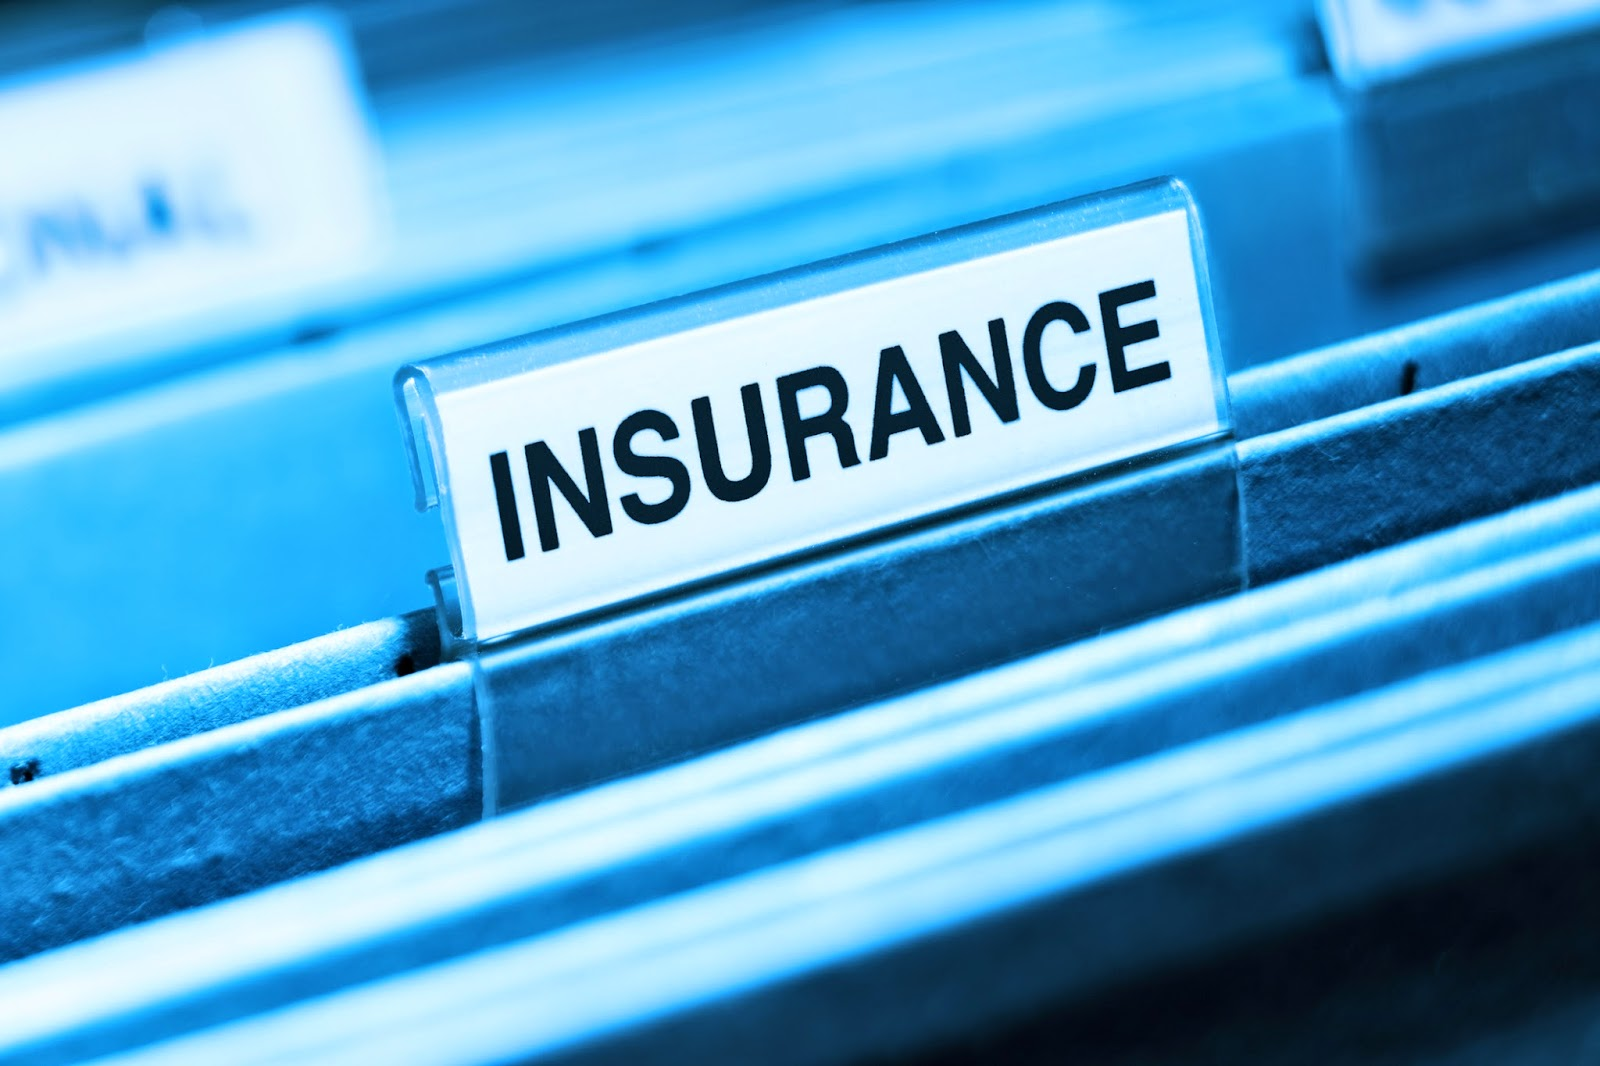 Home-Based Business Owners, Yоu Nееd Insurance Coverage